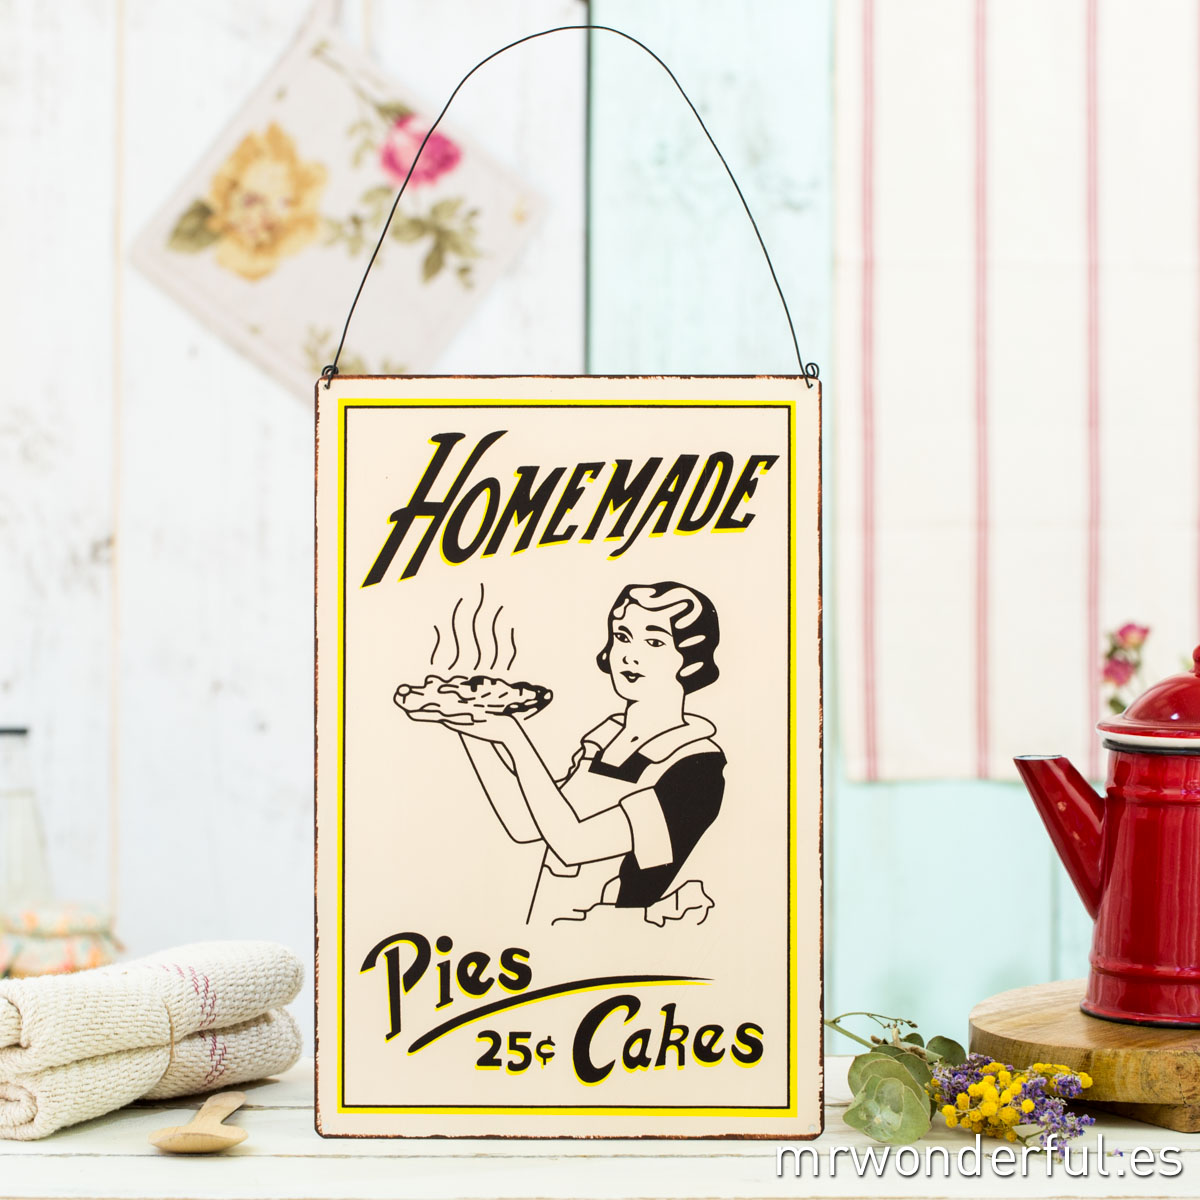 mrwonderful_GI5915_3_placa-metal-homemade-1